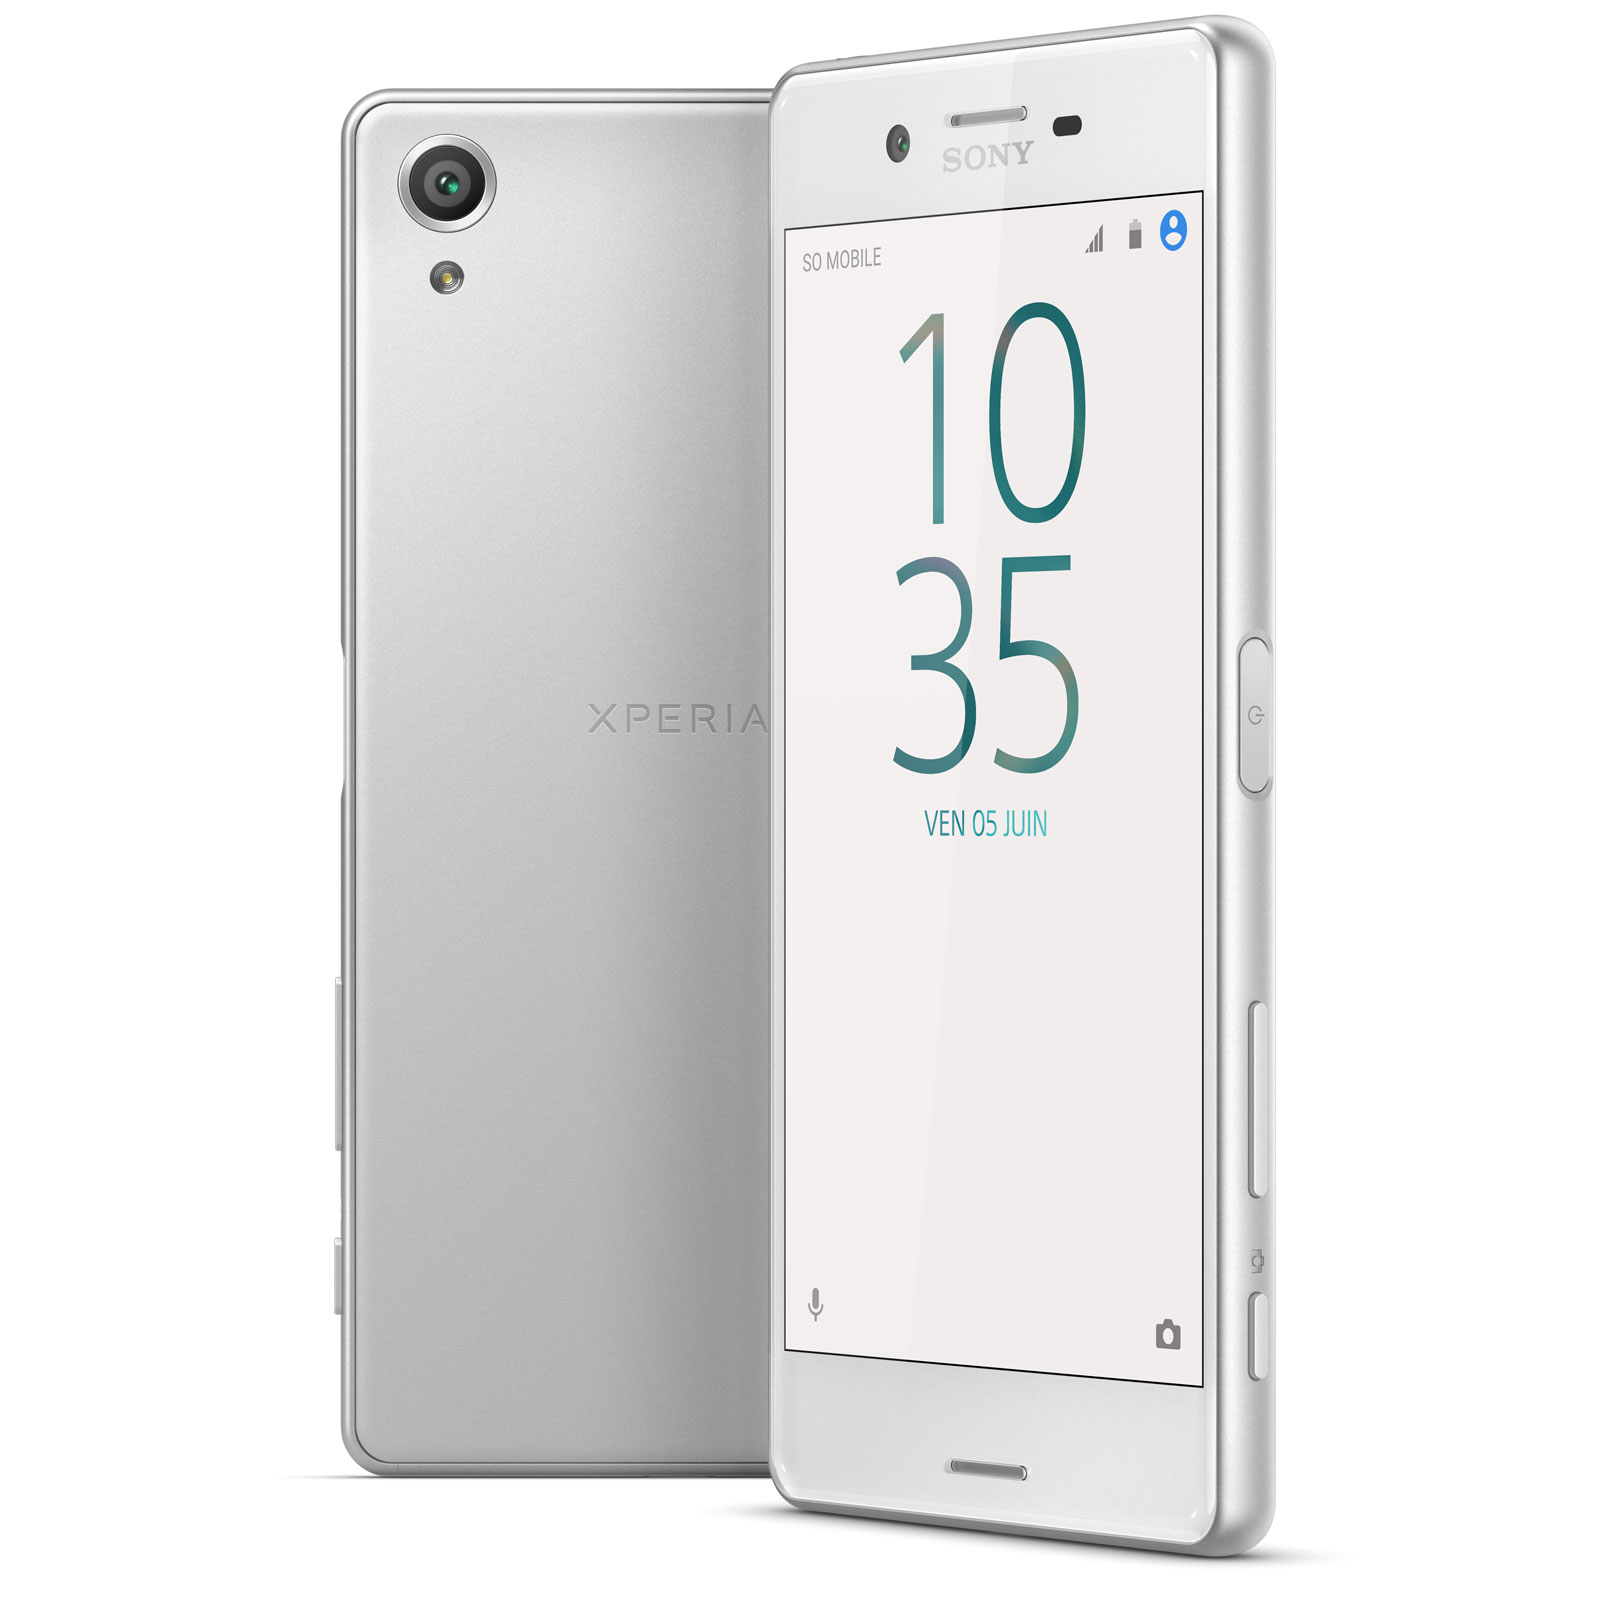 sony xperia x dual sim 64 go blanc mobile smartphone. Black Bedroom Furniture Sets. Home Design Ideas